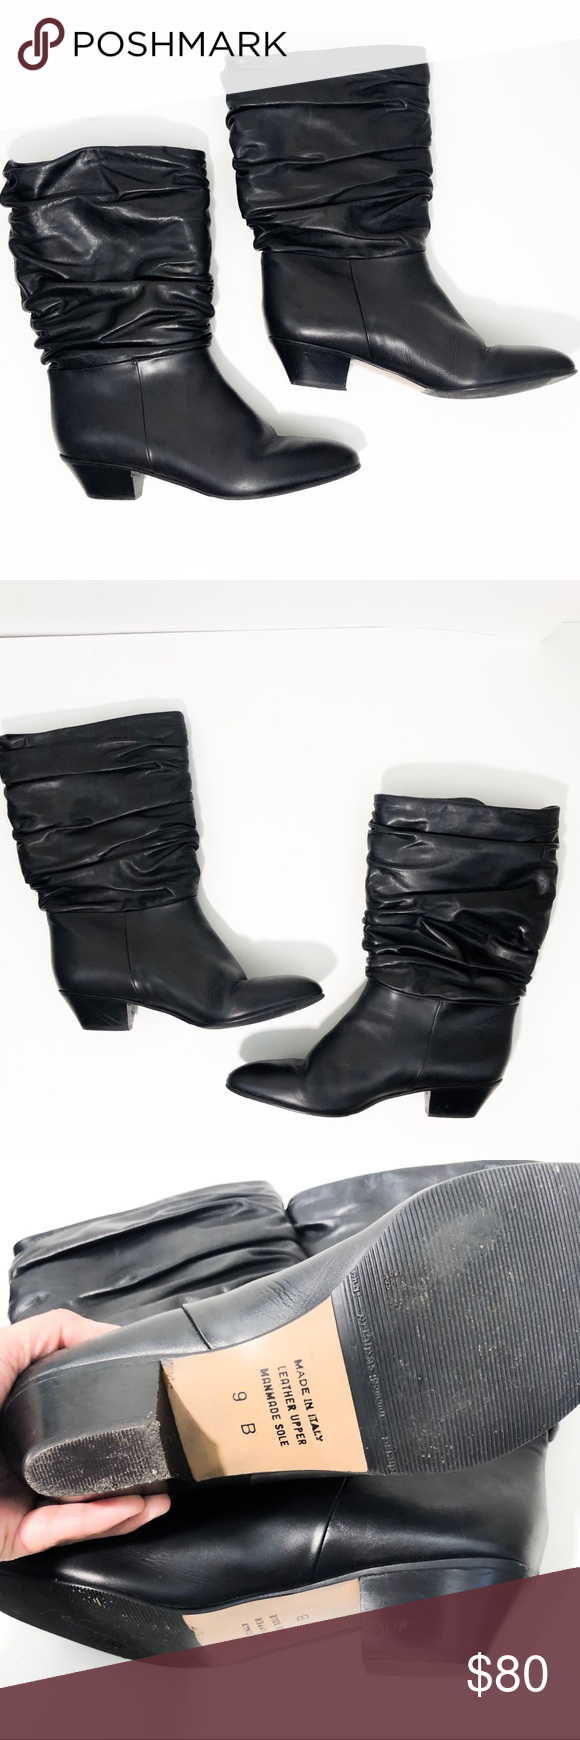 31d9c75416 Sudini Slouchy Mid Calf Black Leather Boots Size 9 Beautiful slouchy mid  calf boots from SUDINI